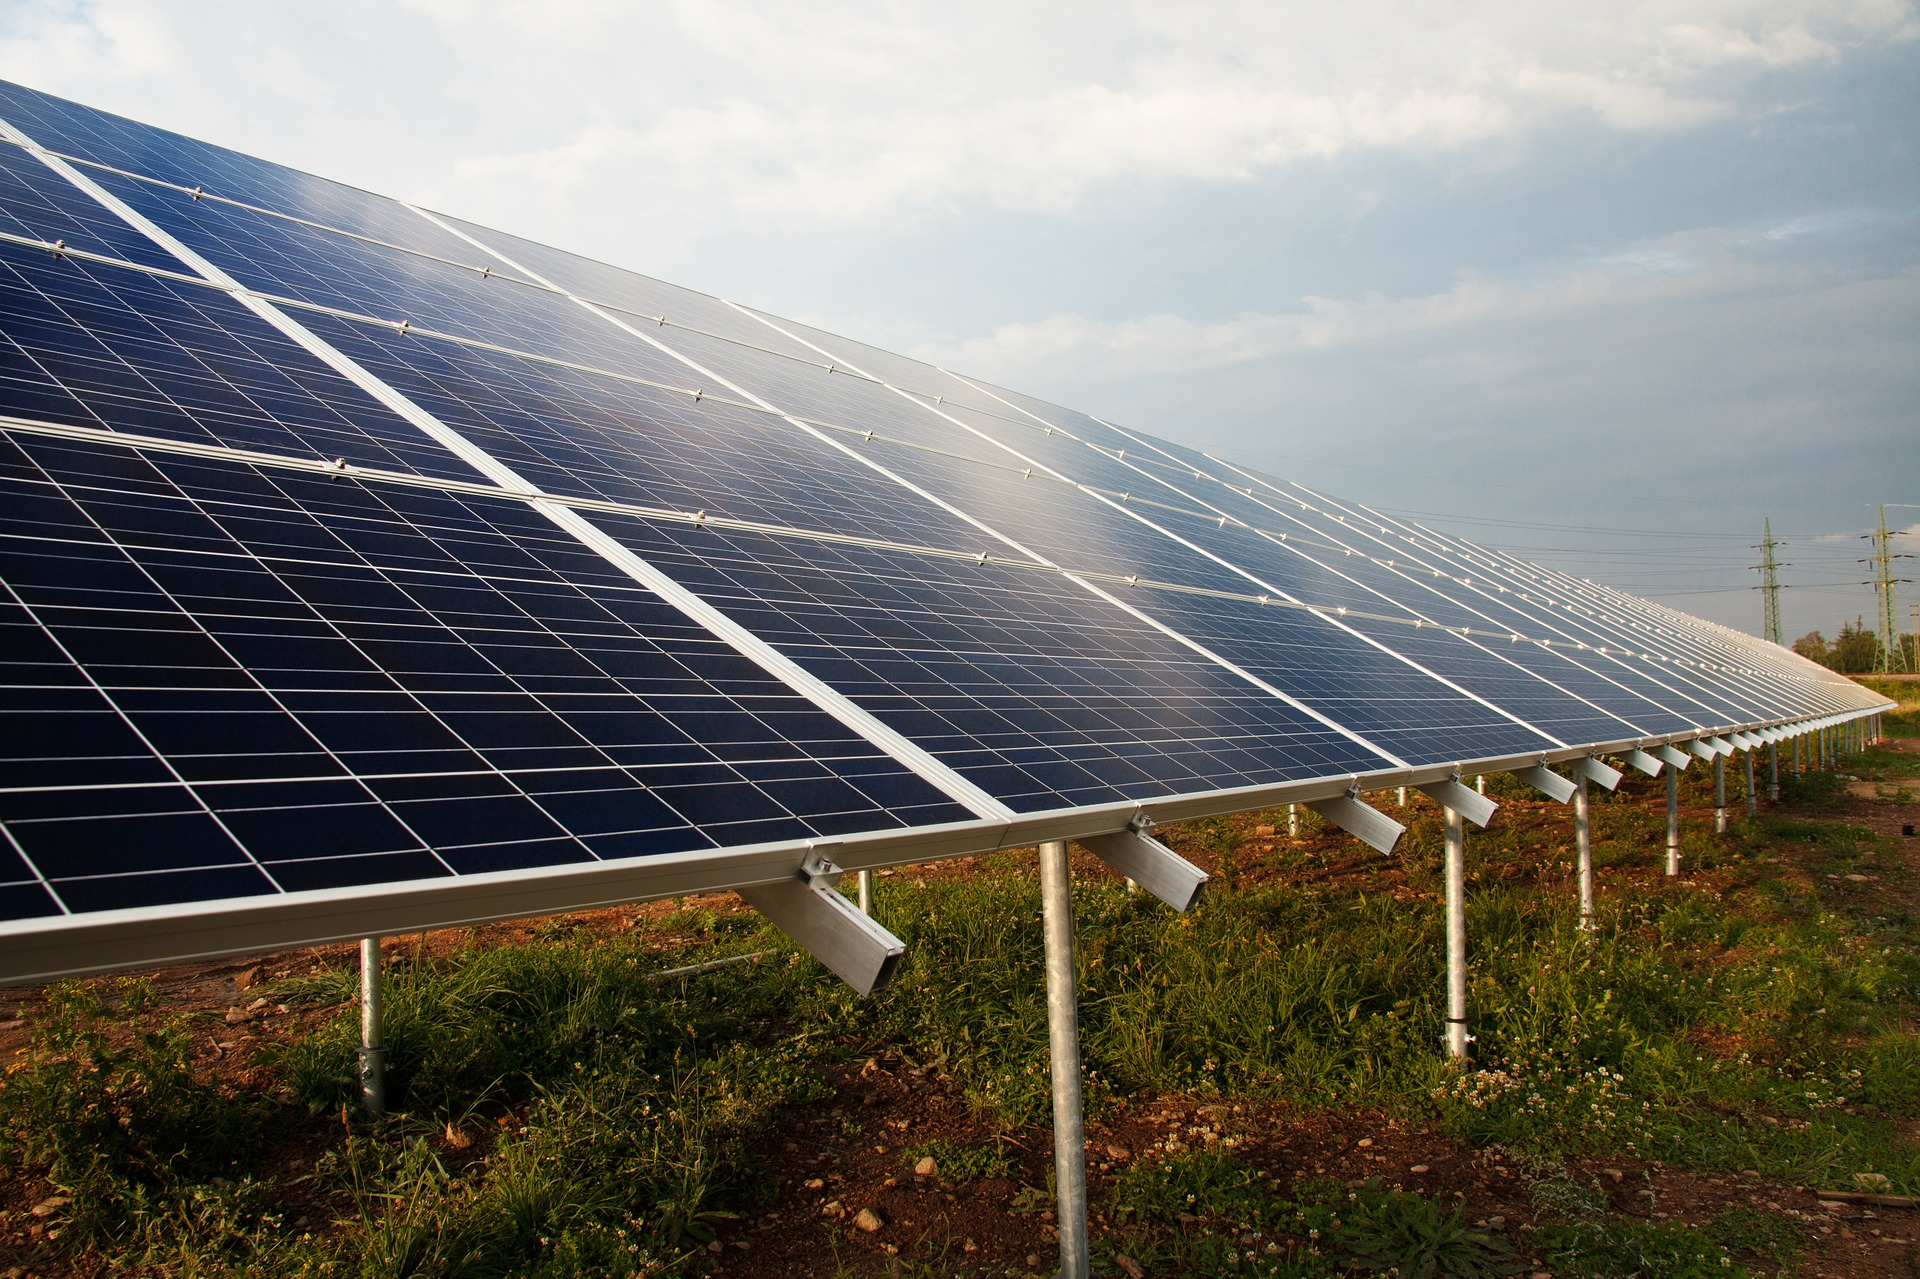 Metal Fabrication for Solar Power Industry and Alternative Energy